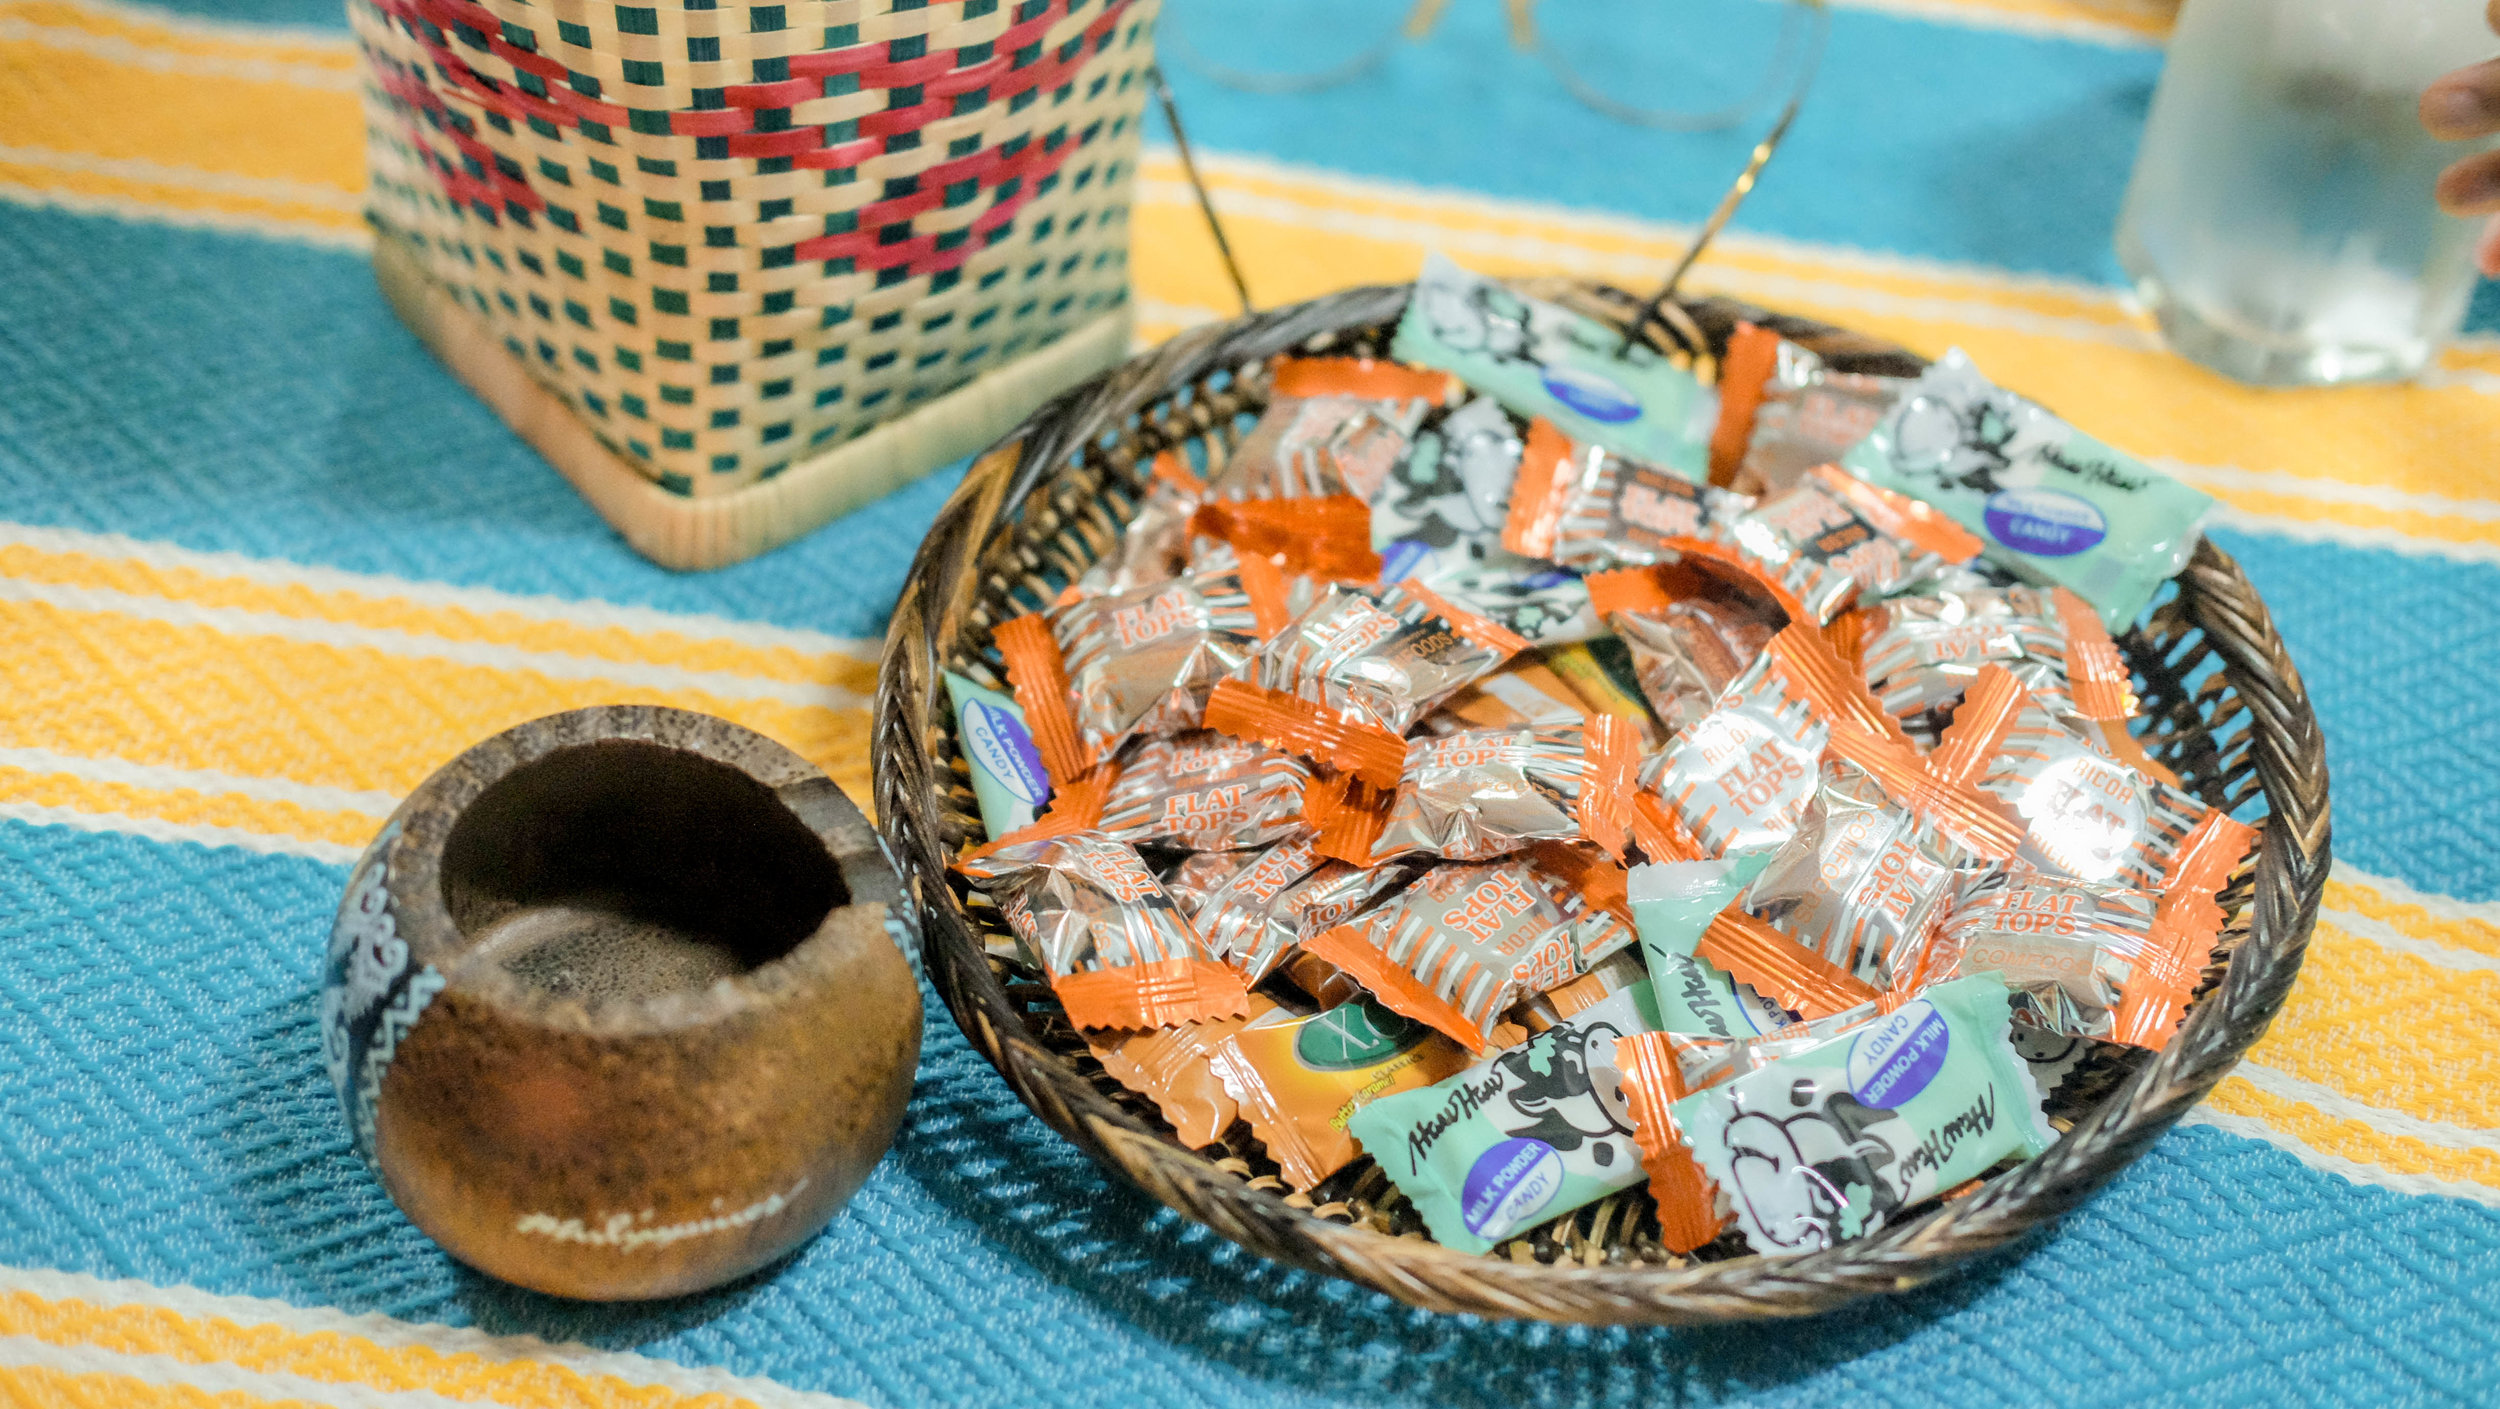 RJ Tries To Style - Low-budget so I had to be resourceful. I got blankets and woven baskets to style the tables. Put in some candies too!!